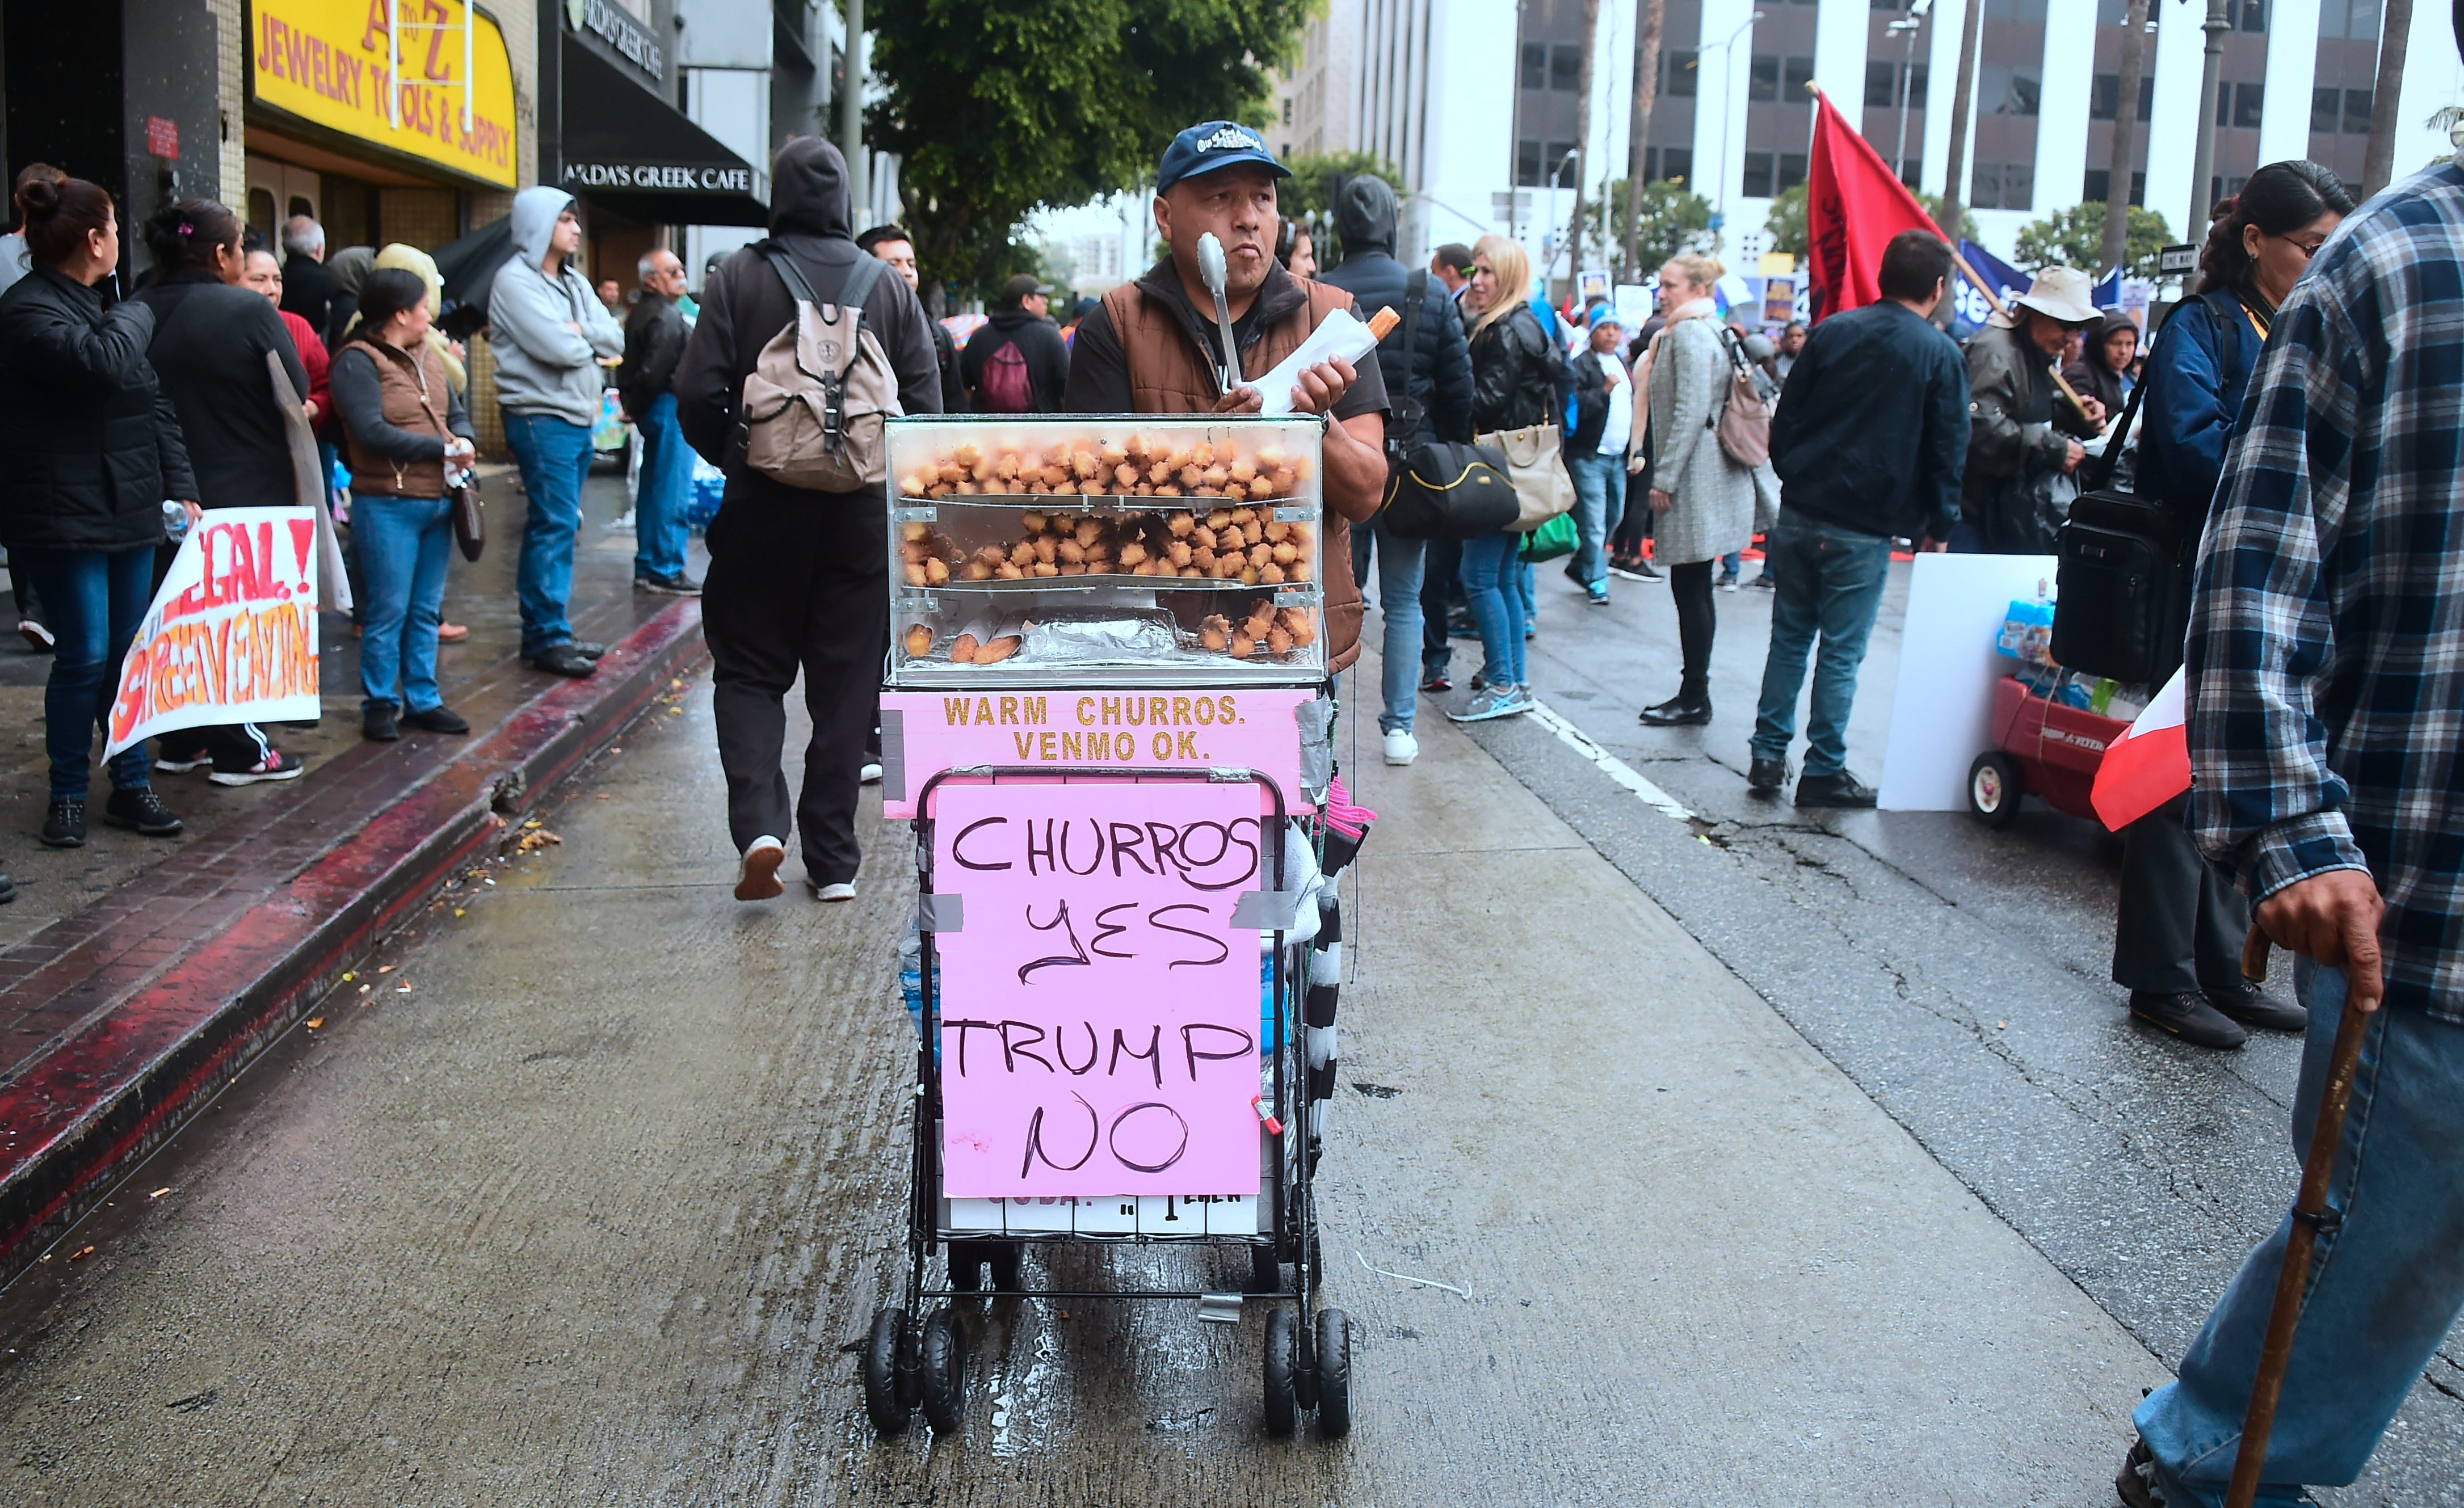 Selling street food is no longer a crime in California, easing fears